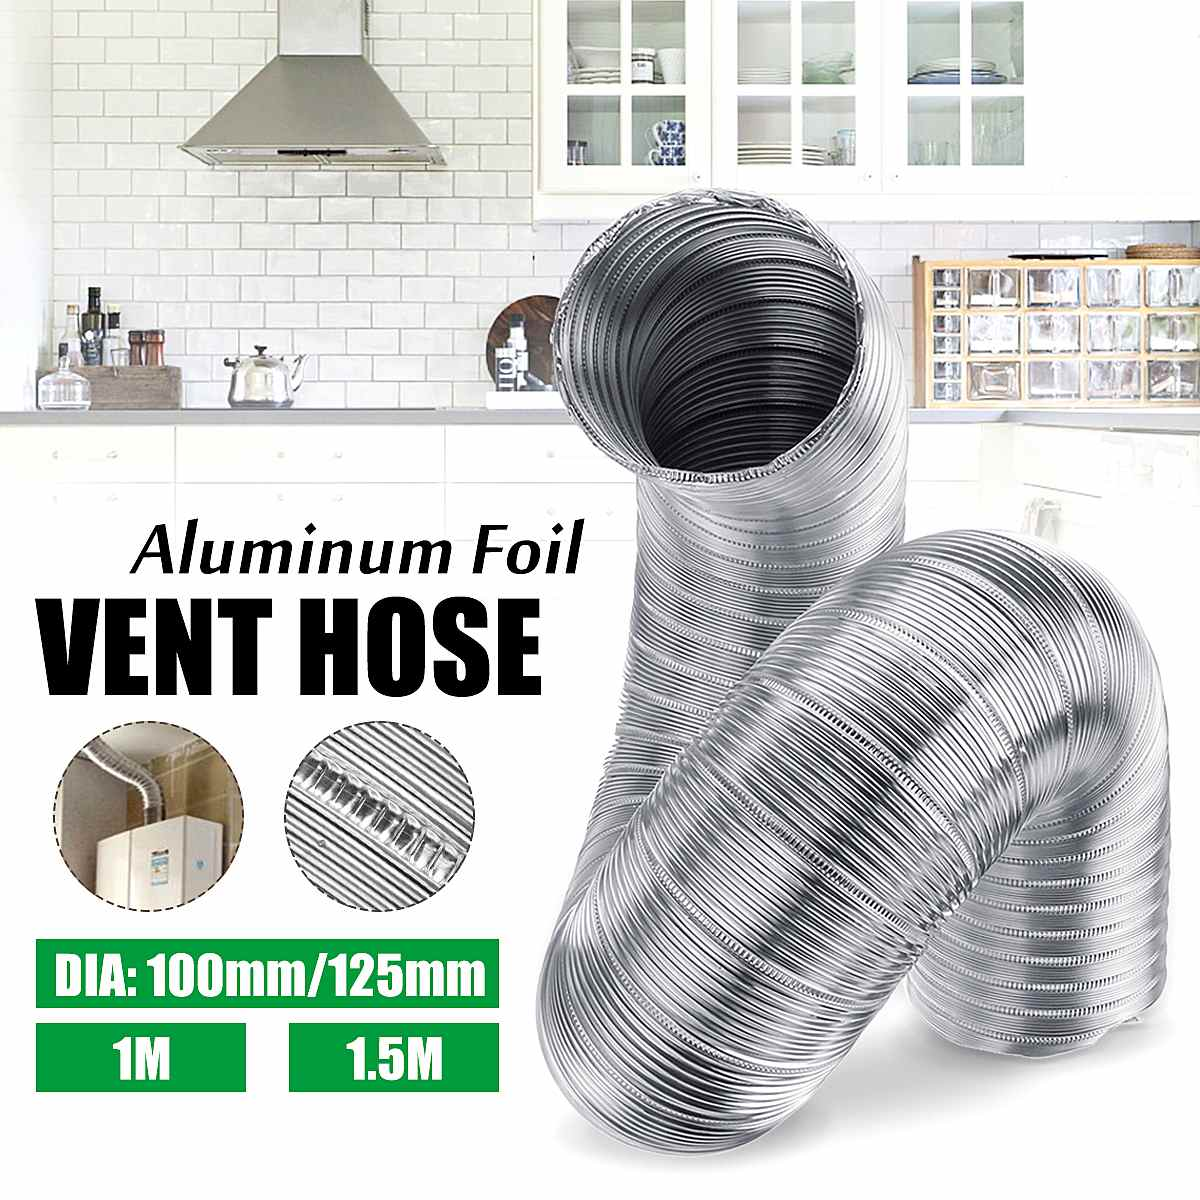 4/6 Inch Air Ventilation Ventilator Aluminum Pipe Tube Hose Flexible Exhaust Pipe Duct Air System Air Conditioner Accessories